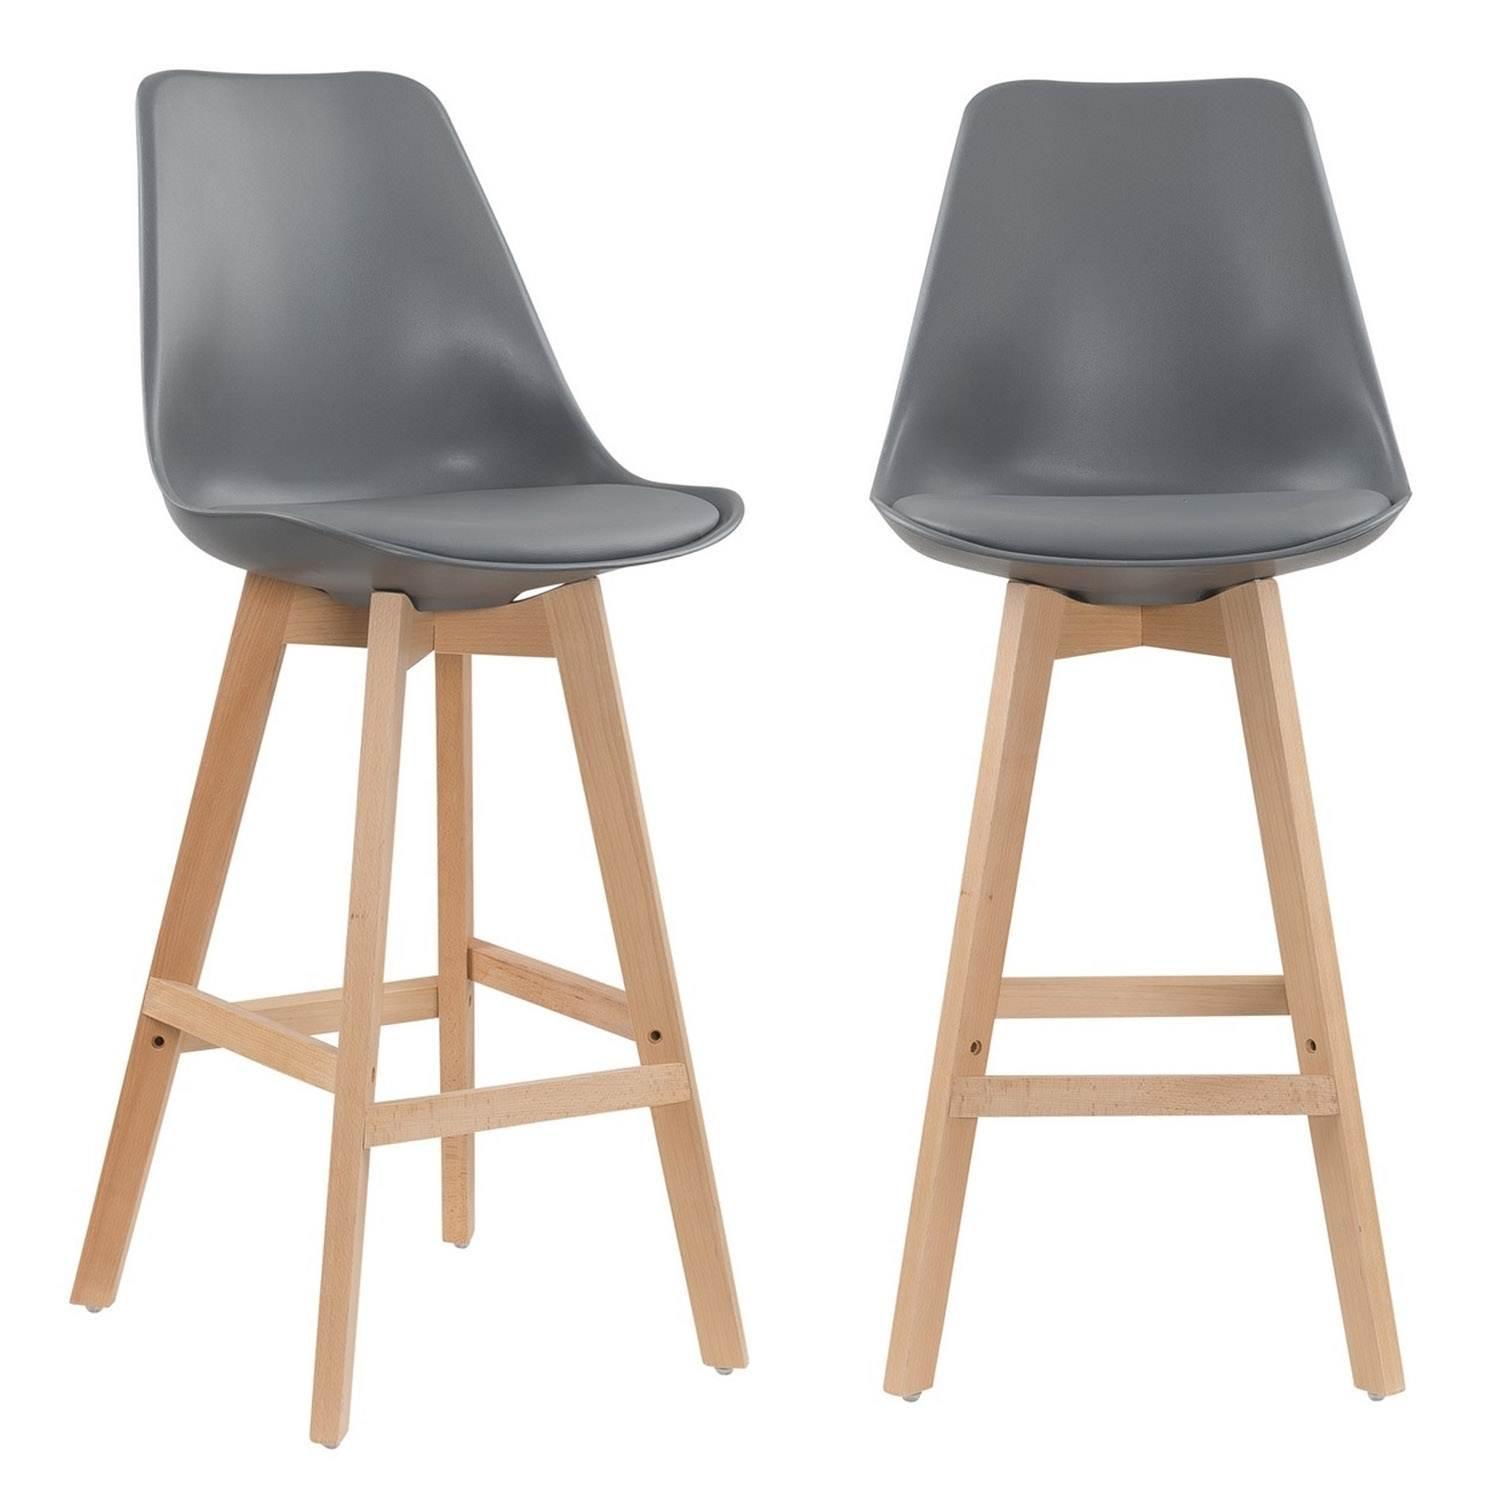 Tabouret De Bar Scandinave Deco In Paris 8 Lot De 2 Tabourets De Bar Scandinave